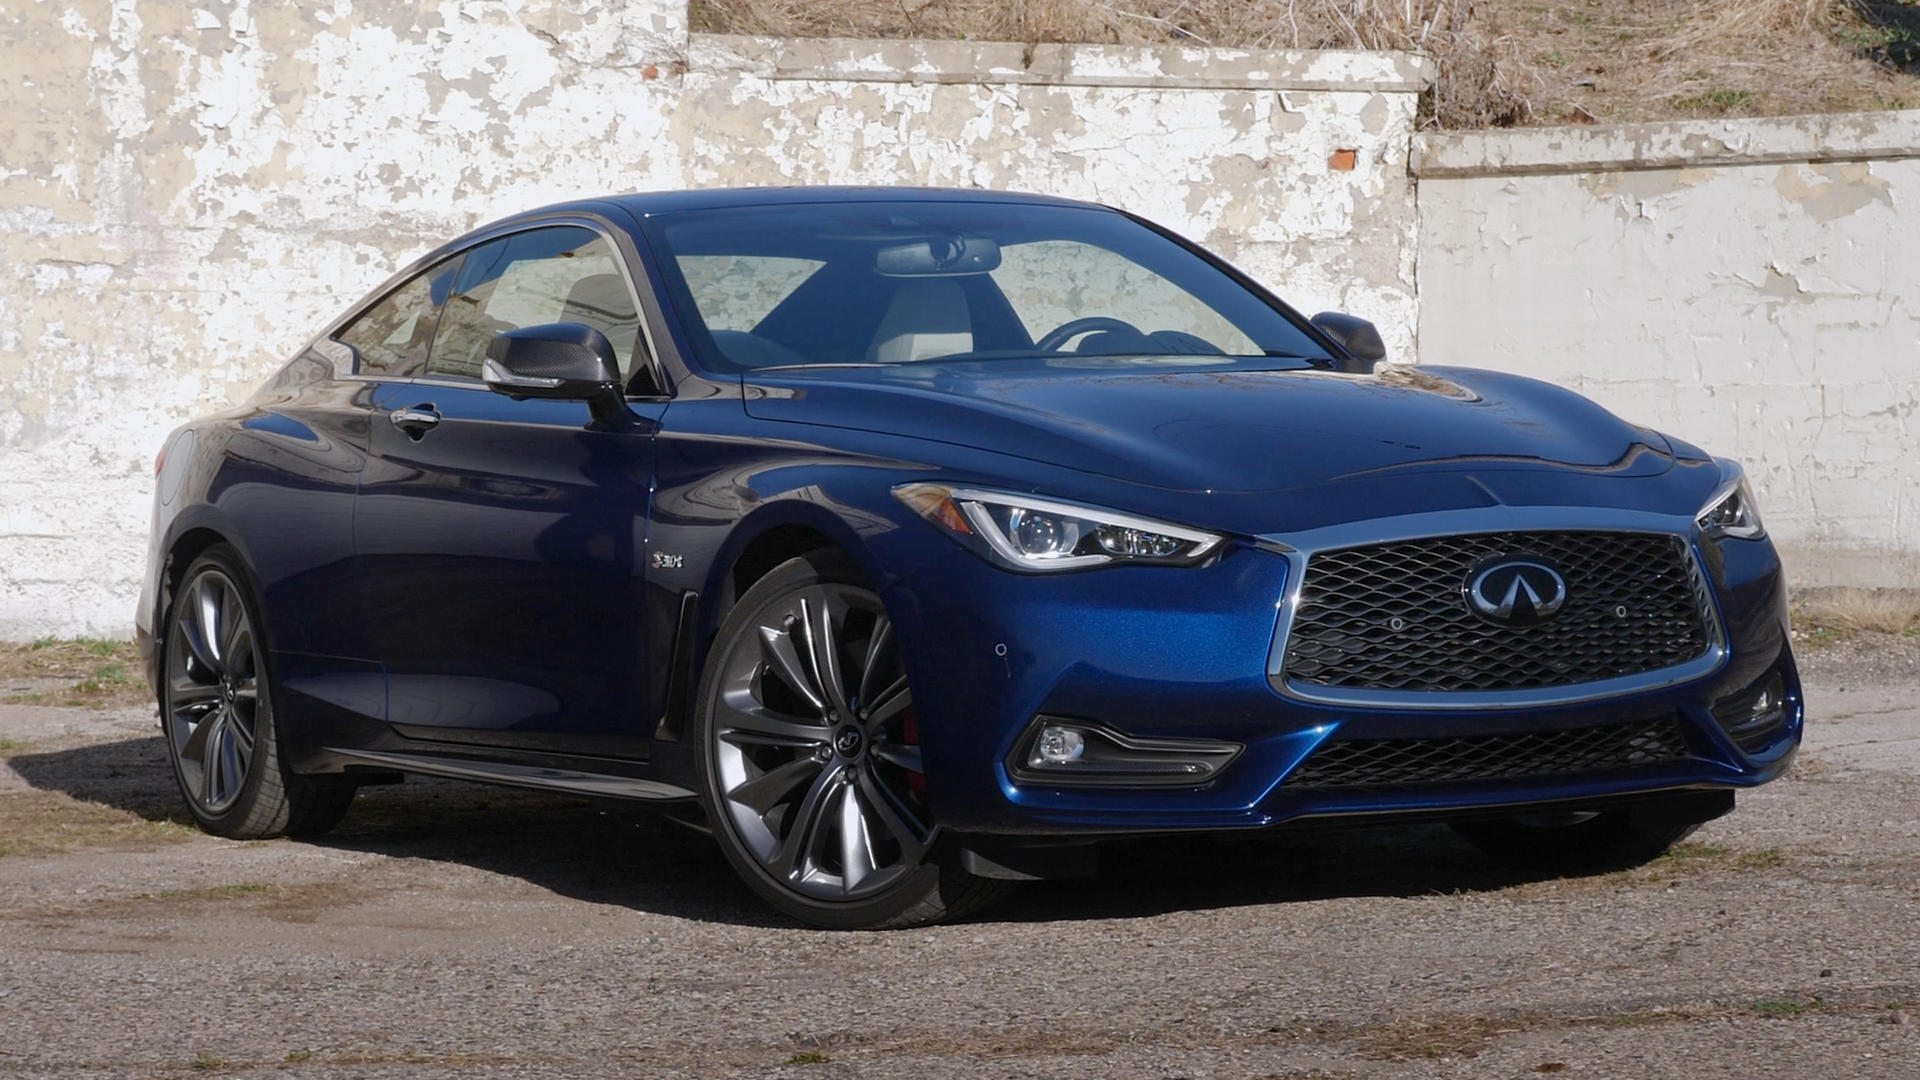 Video: 5 things you need to know about the 2019 Infiniti Q60 Red Sport 400